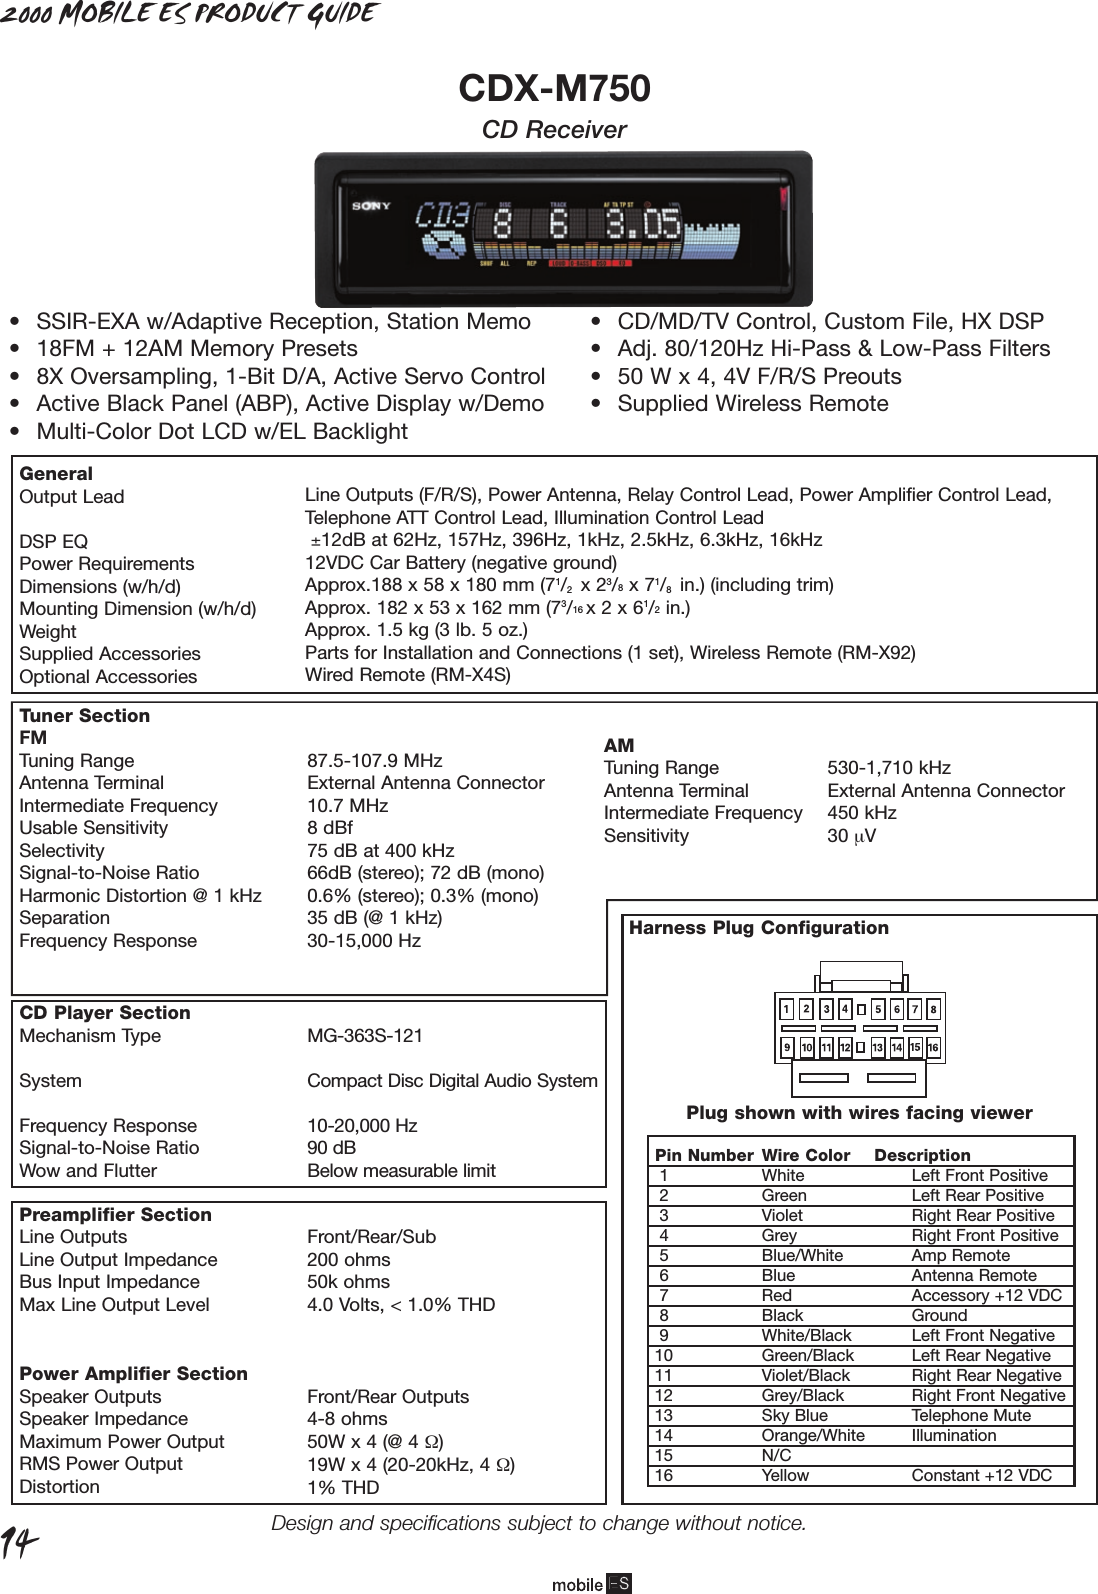 sony cdx m750 90226a me product guide p1ver4 user manual rh usermanual wiki Sony Stereo Wiring Colors Sony Stereo Wiring Colors